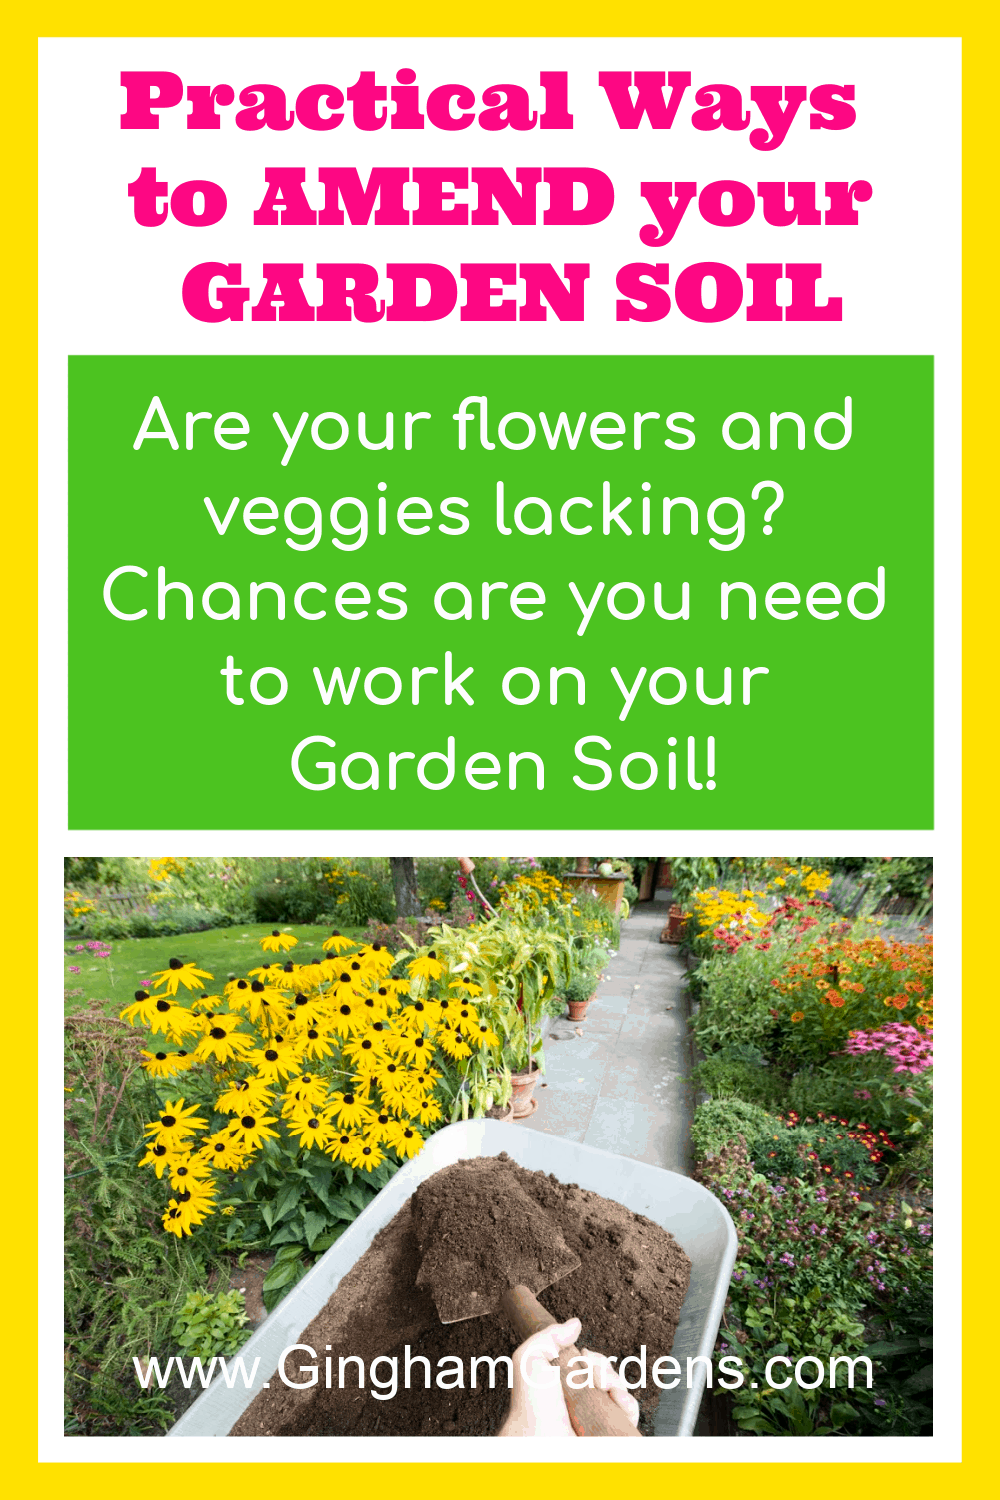 Image of wheelbarrow in flower garden with text overlay - Practical ways to amend your garden soil